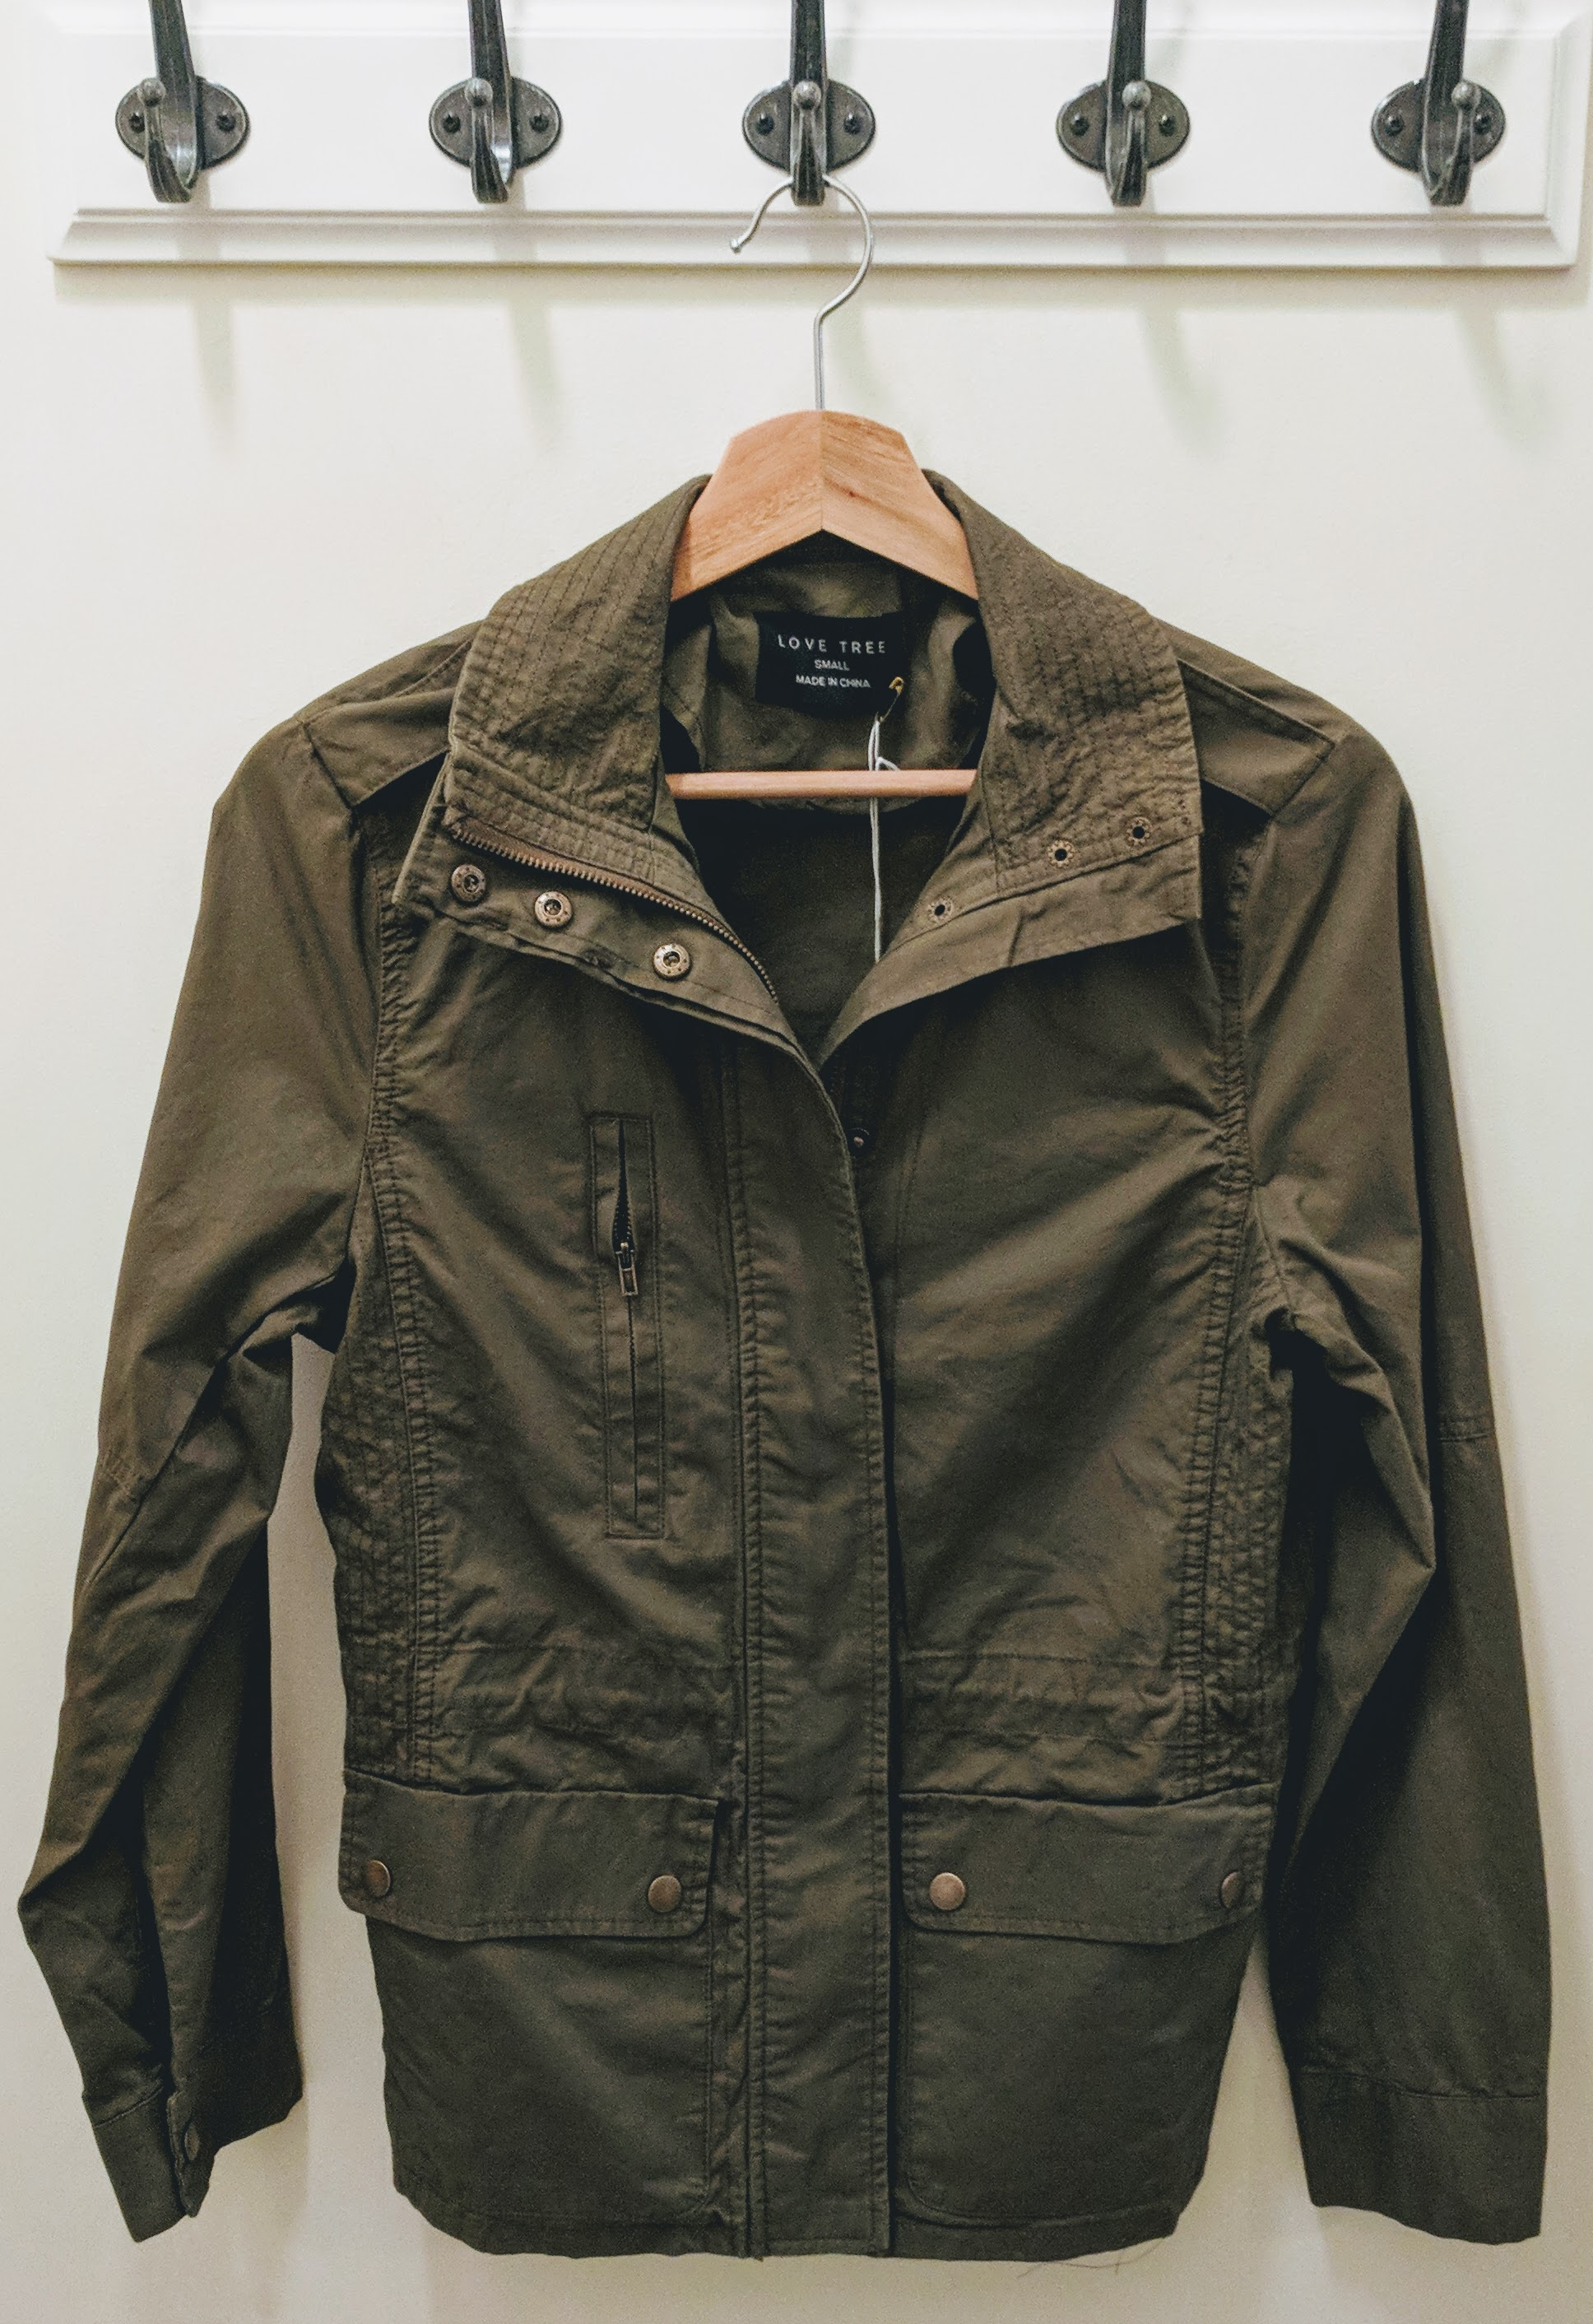 Olive utility jackets with elastic adjustable waistband.